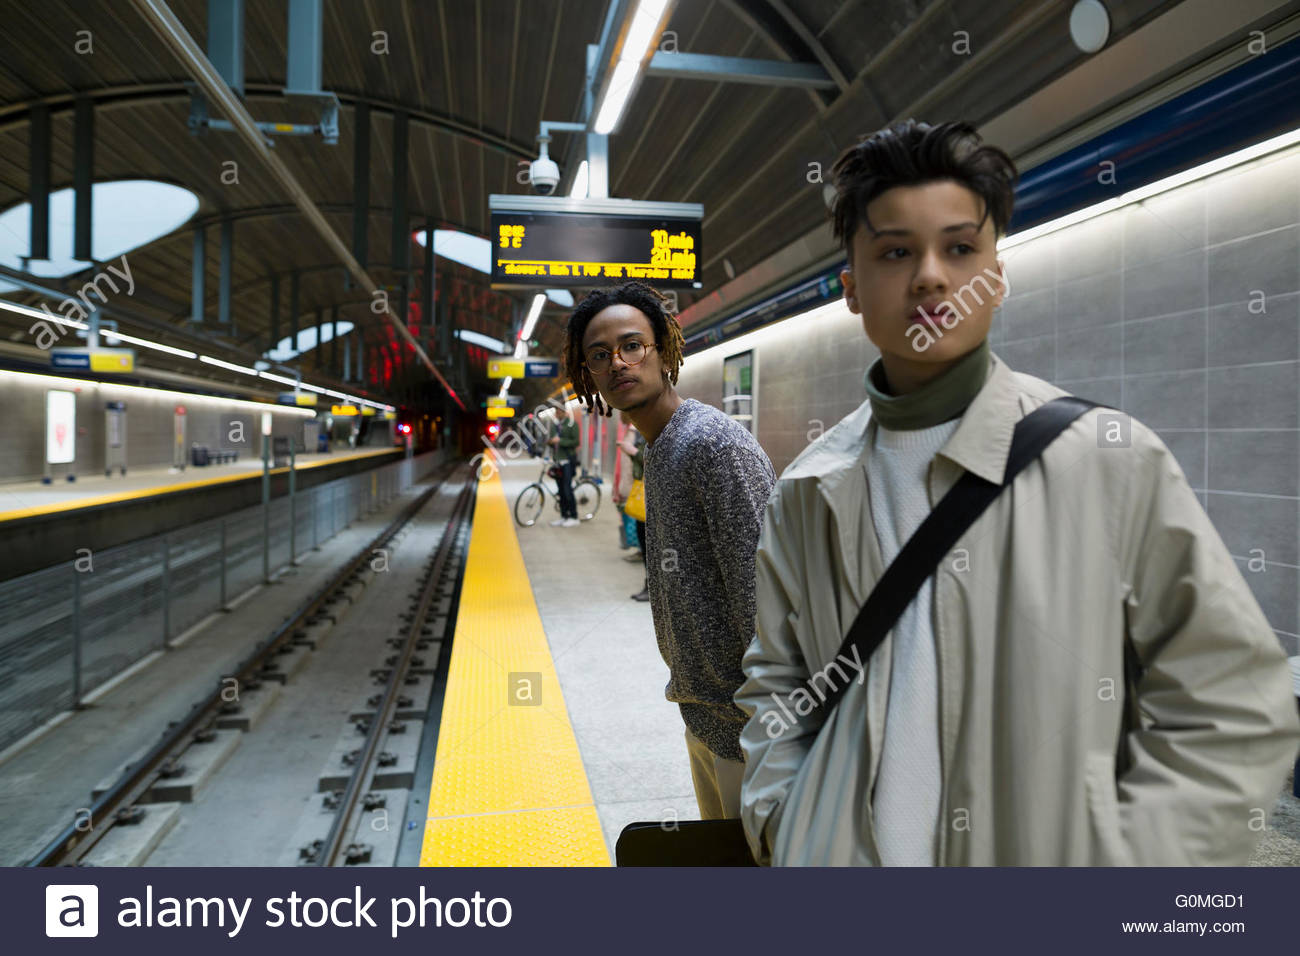 Young men waiting on subway station platform - Stock Image